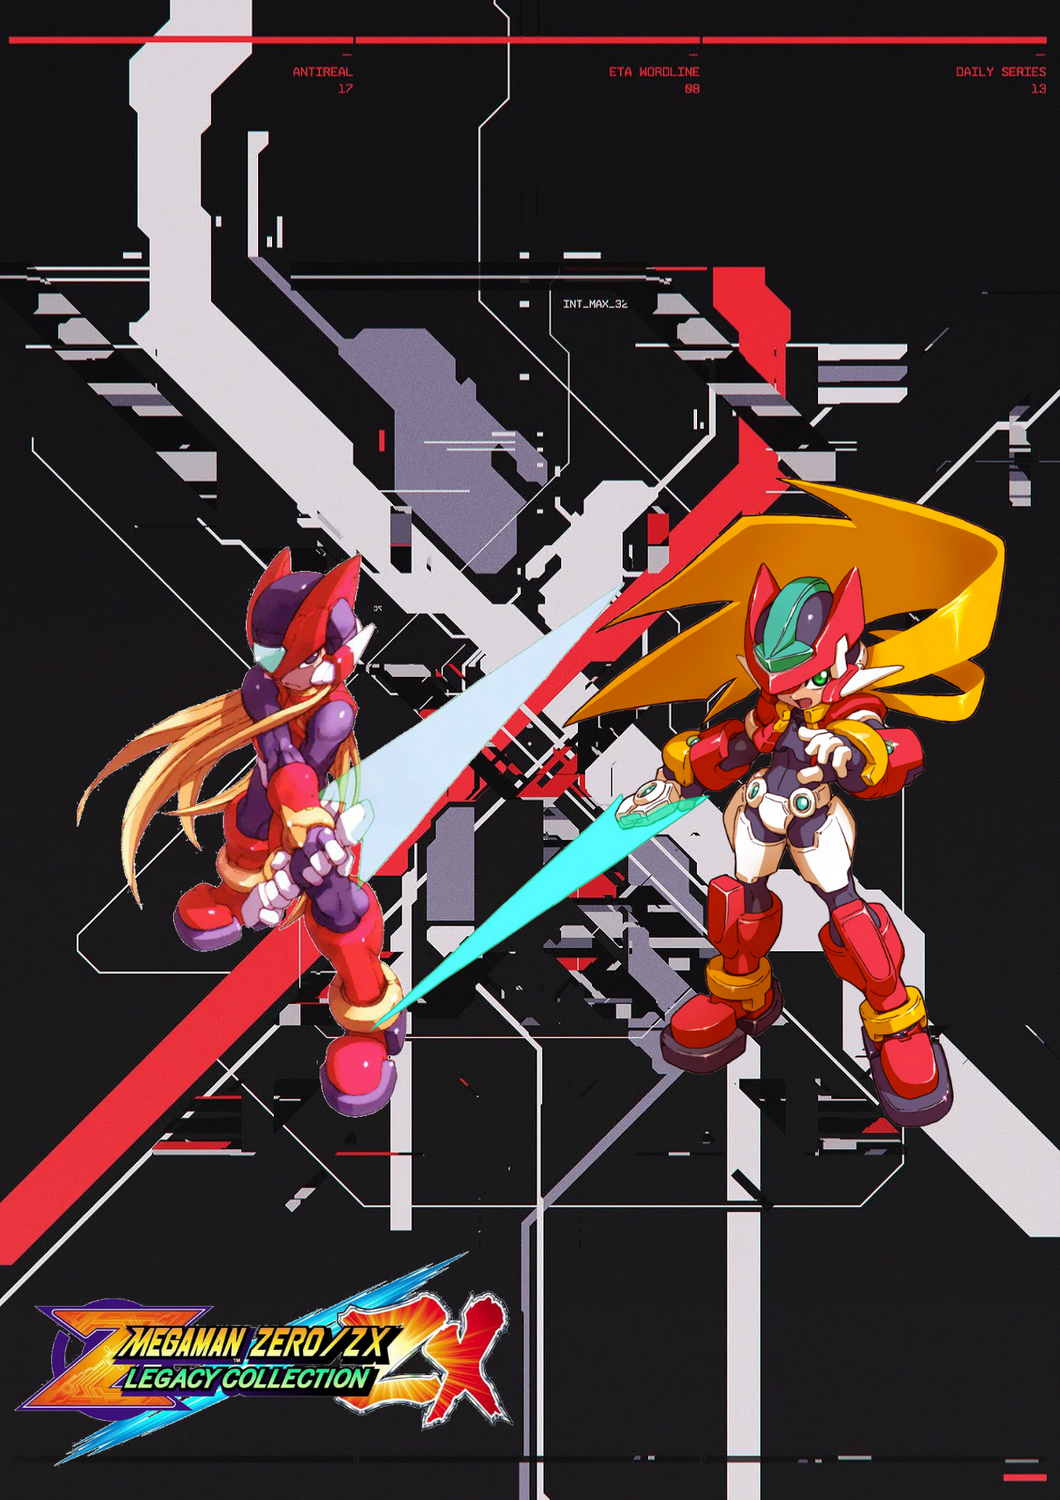 Megaman Zero Zx Legacy Collection Wallpaper Megaman Zero Mega Man Capcom Art